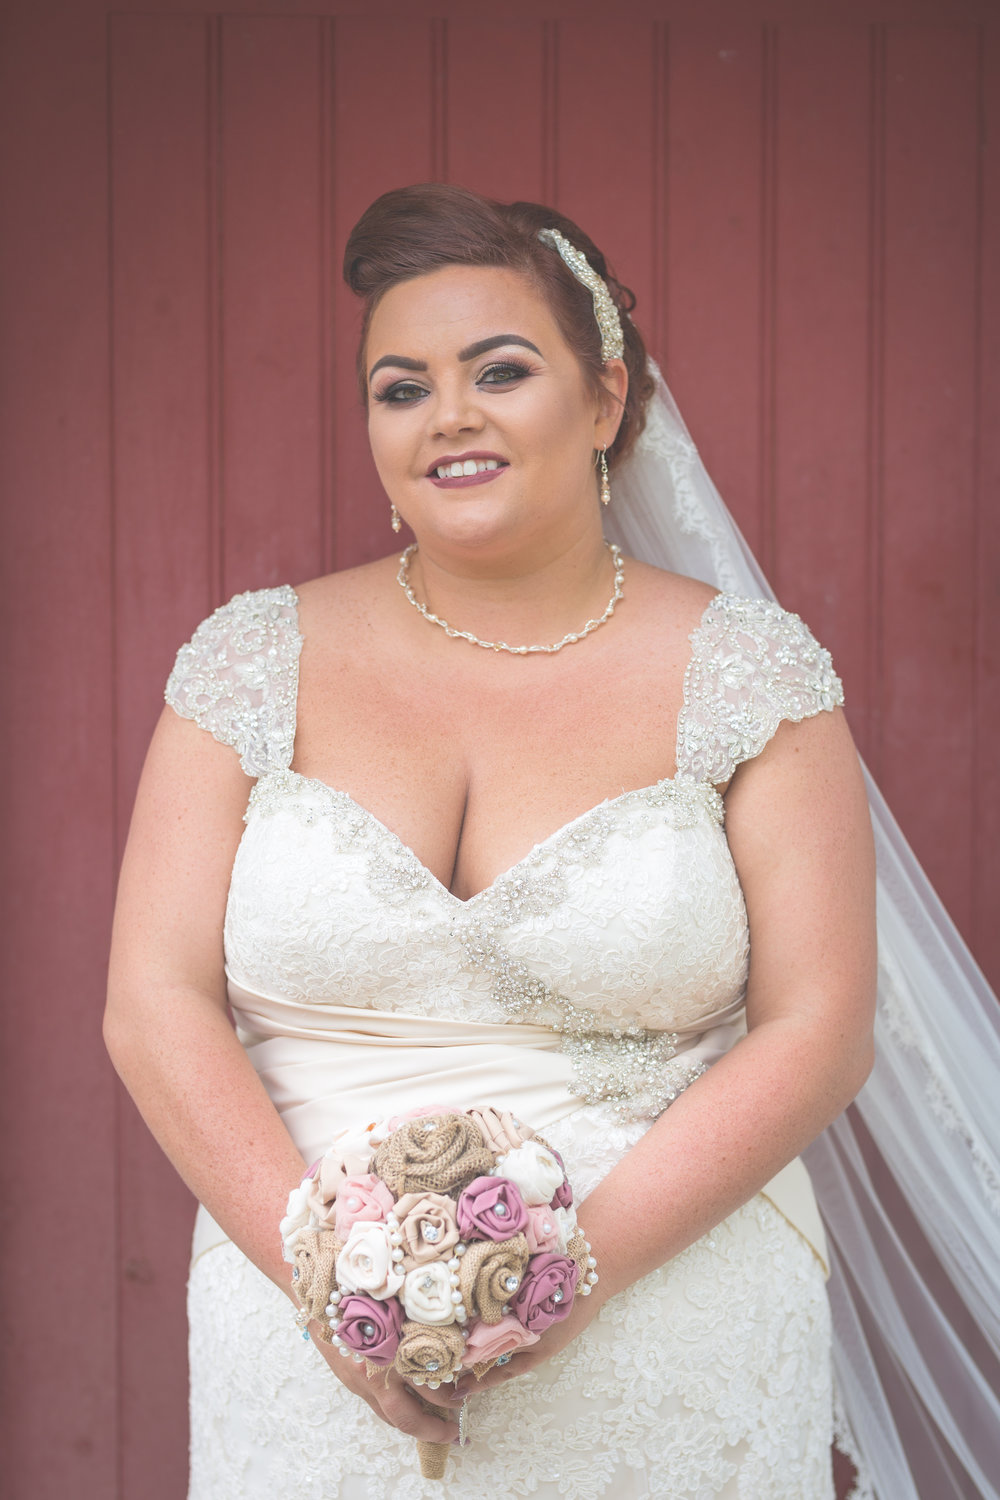 Antoinette & Stephen - Portraits | Brian McEwan Photography | Wedding Photographer Northern Ireland 11.jpg